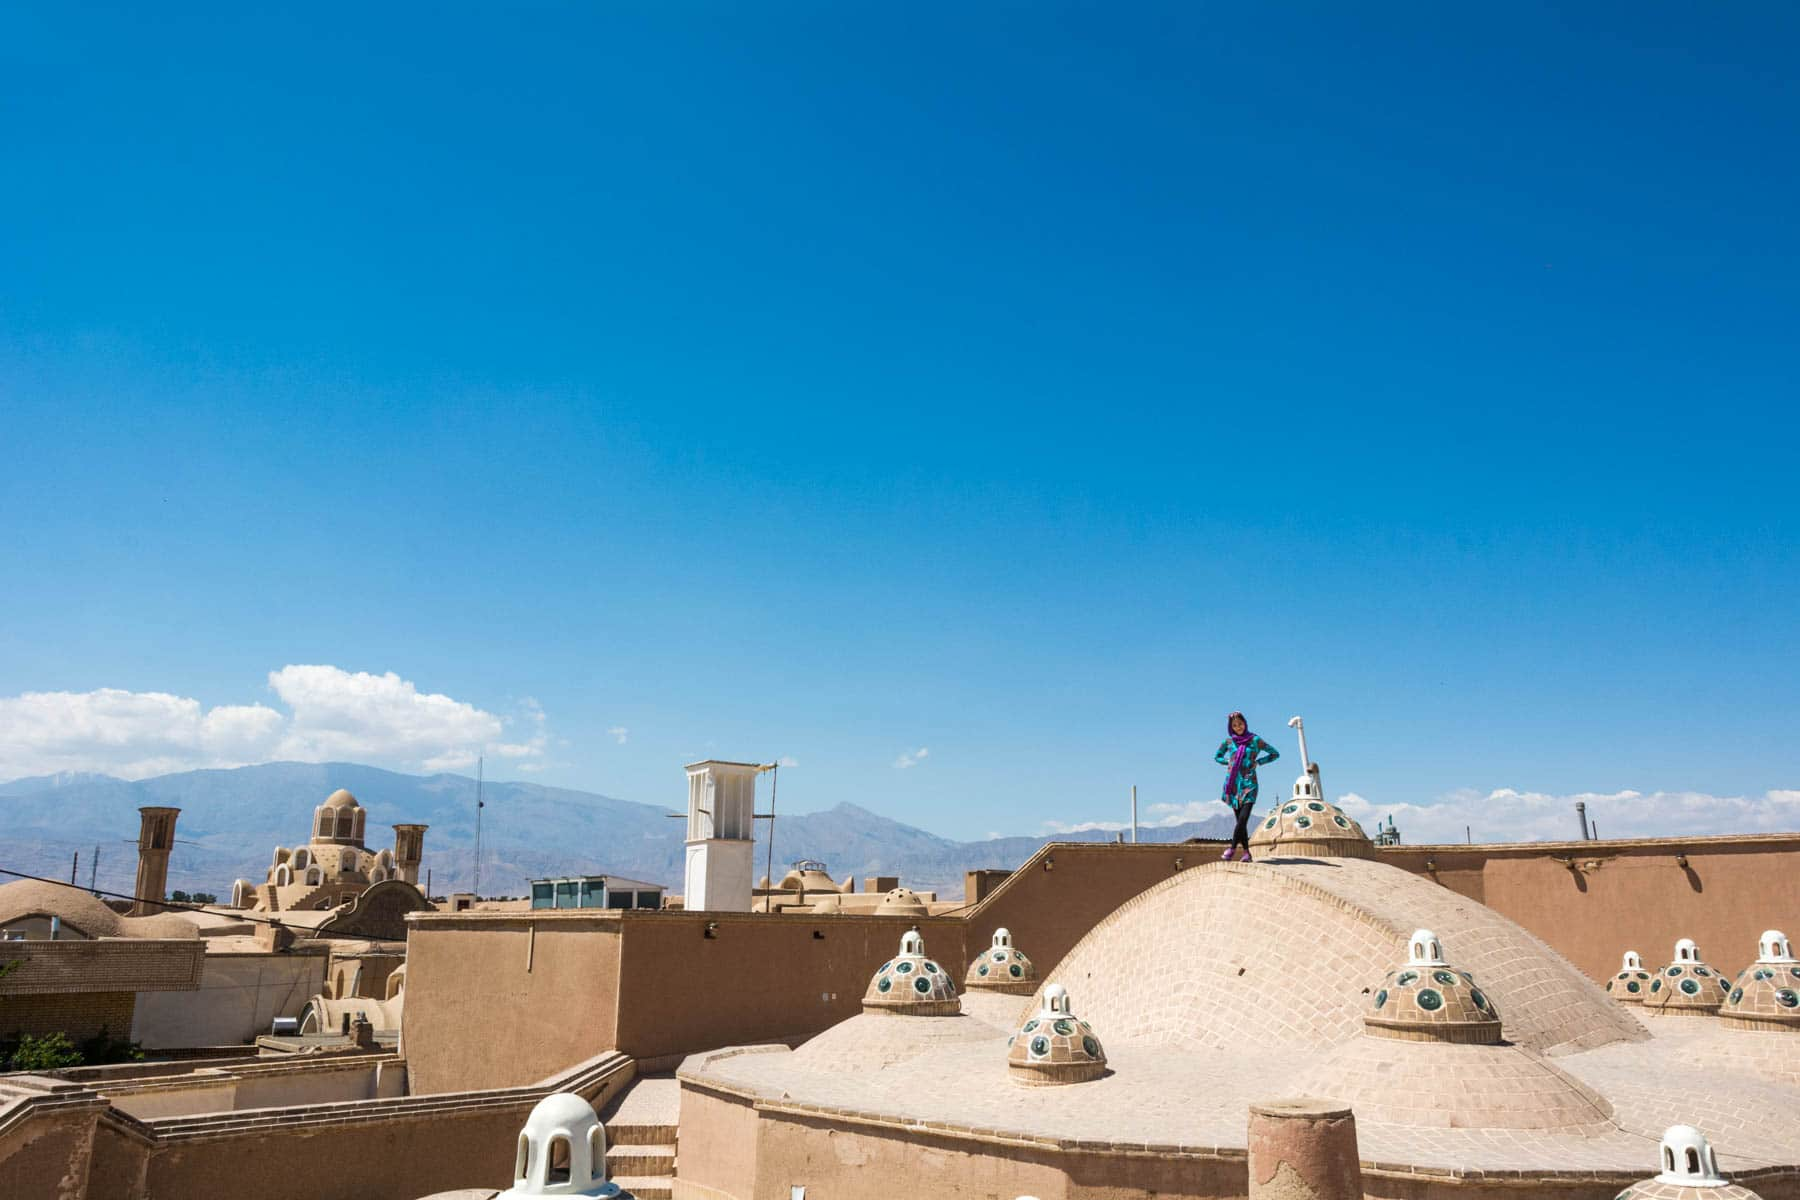 How much does a year of travel in Asia cost - The rooftops of Kashan, Iran - Lost With Purpose